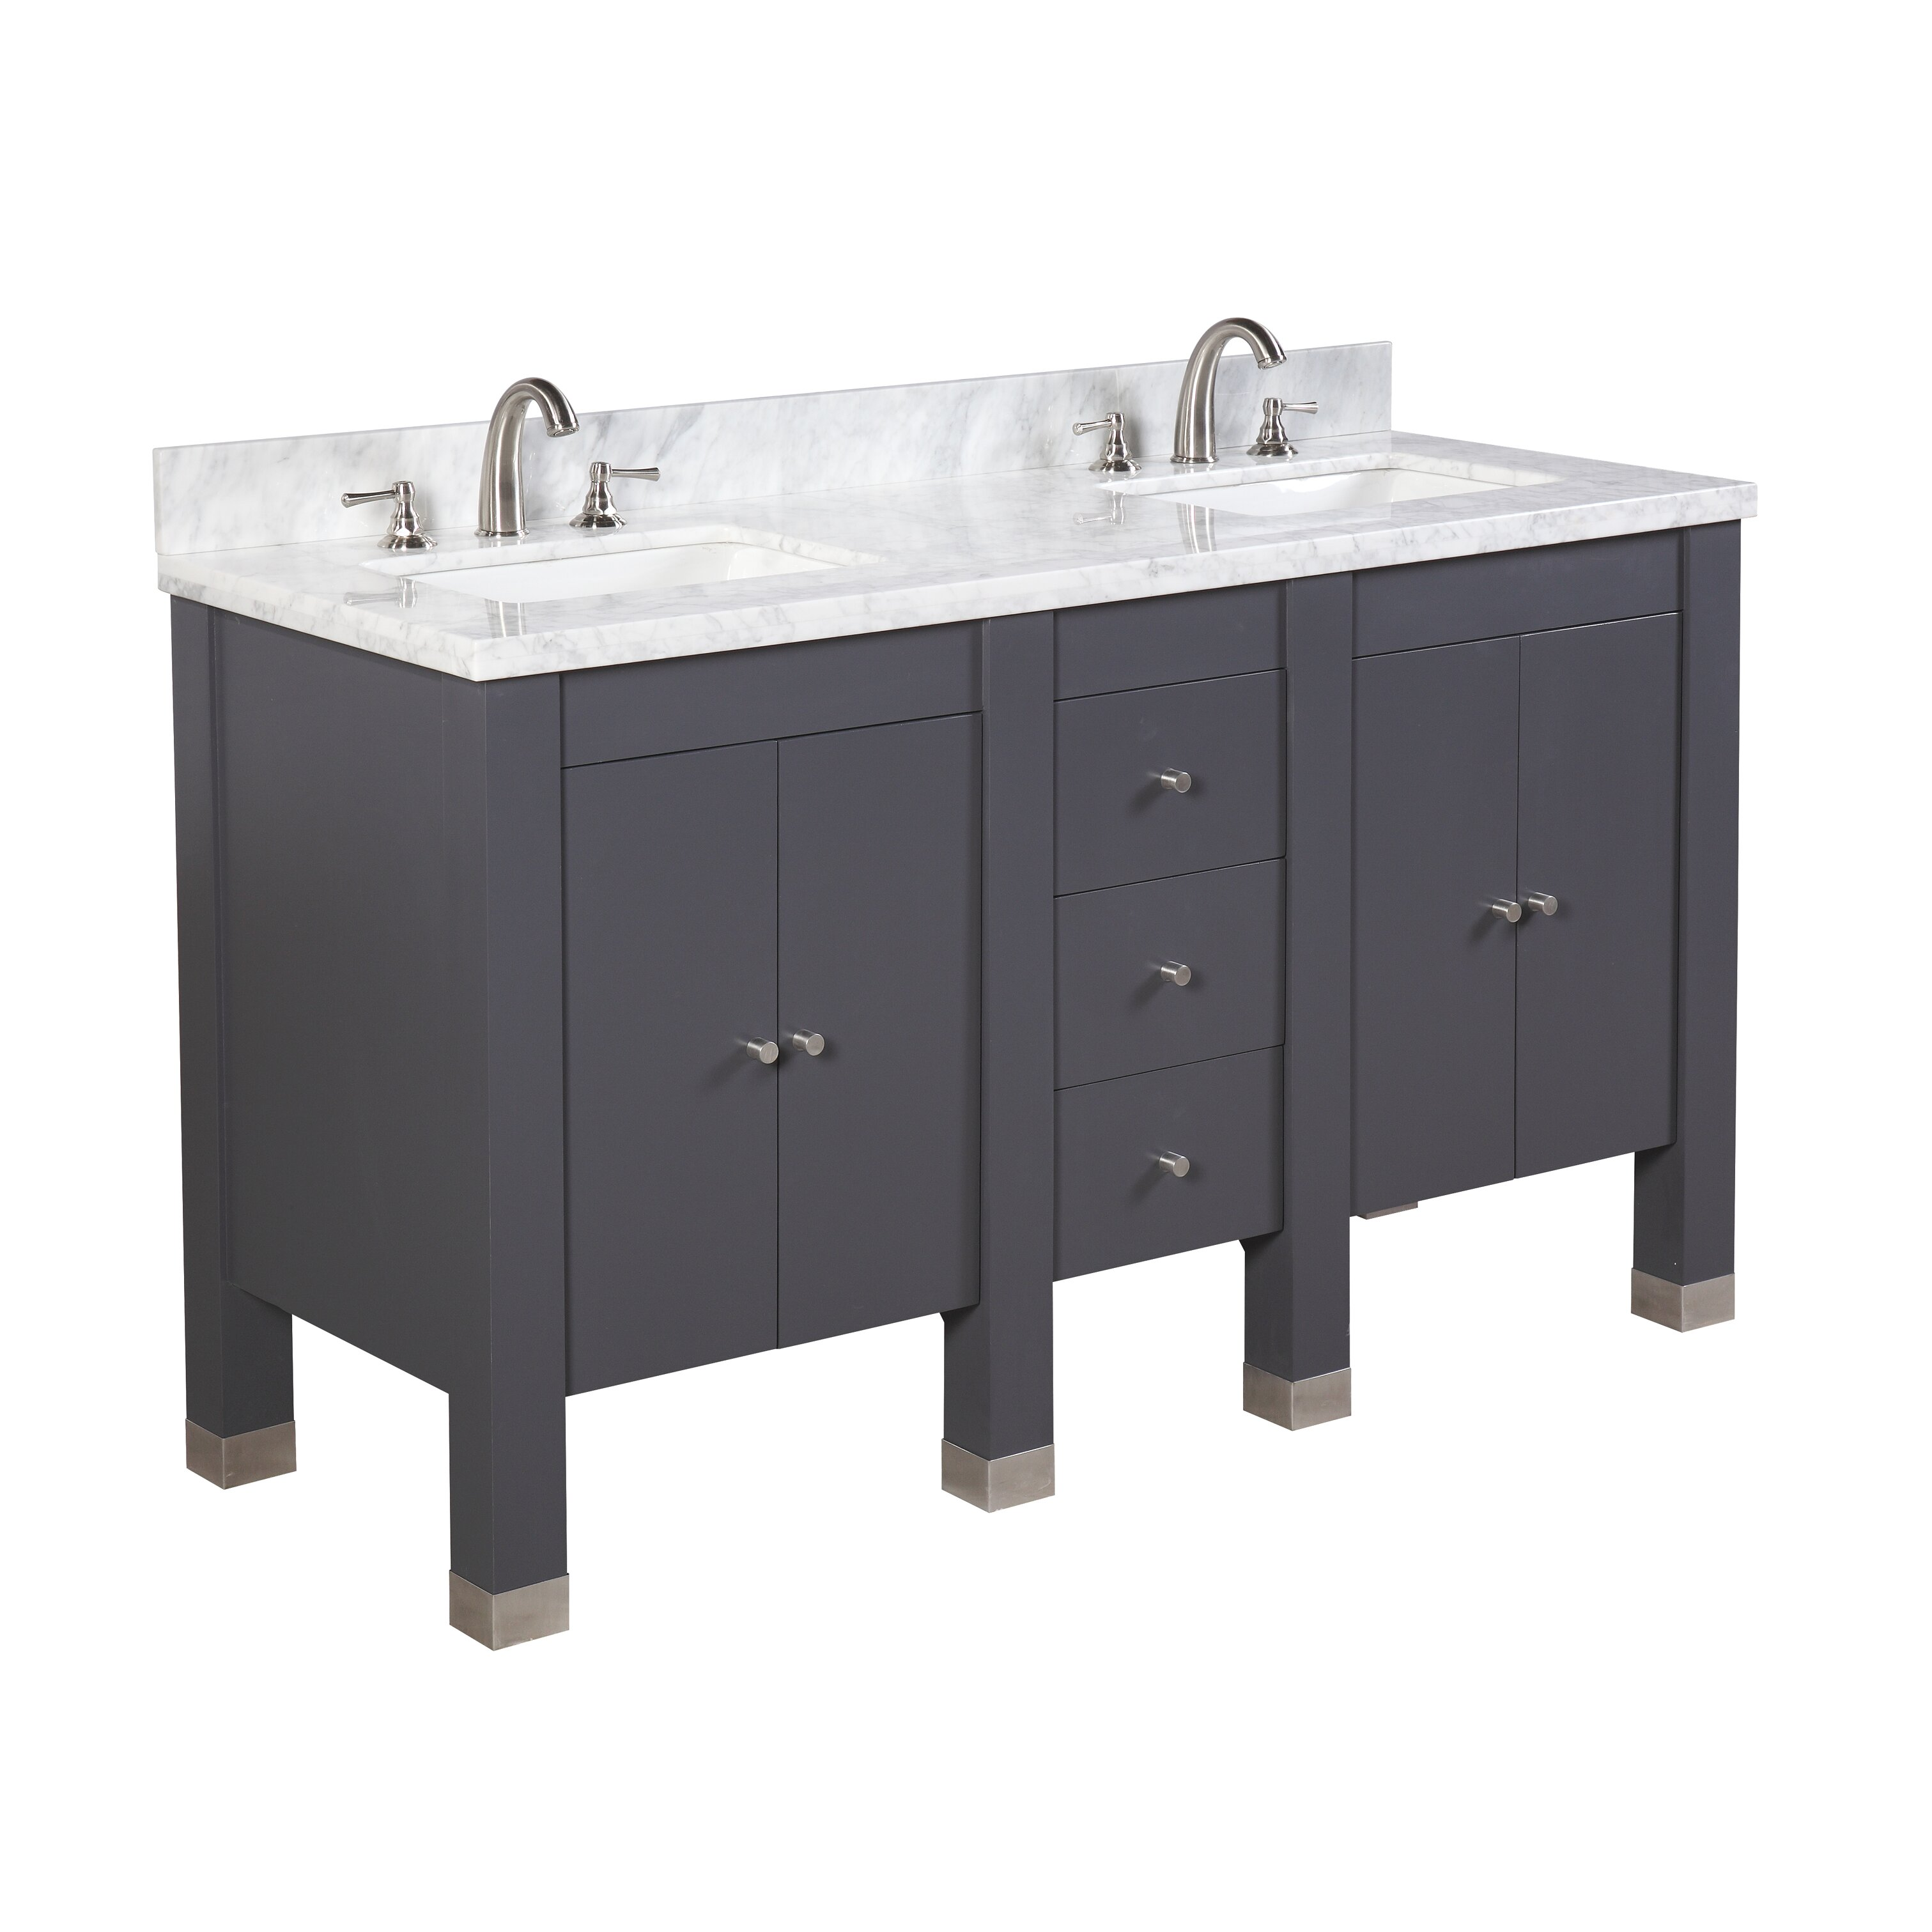 kbc riley 60 double bathroom vanity set reviews wayfair. Black Bedroom Furniture Sets. Home Design Ideas